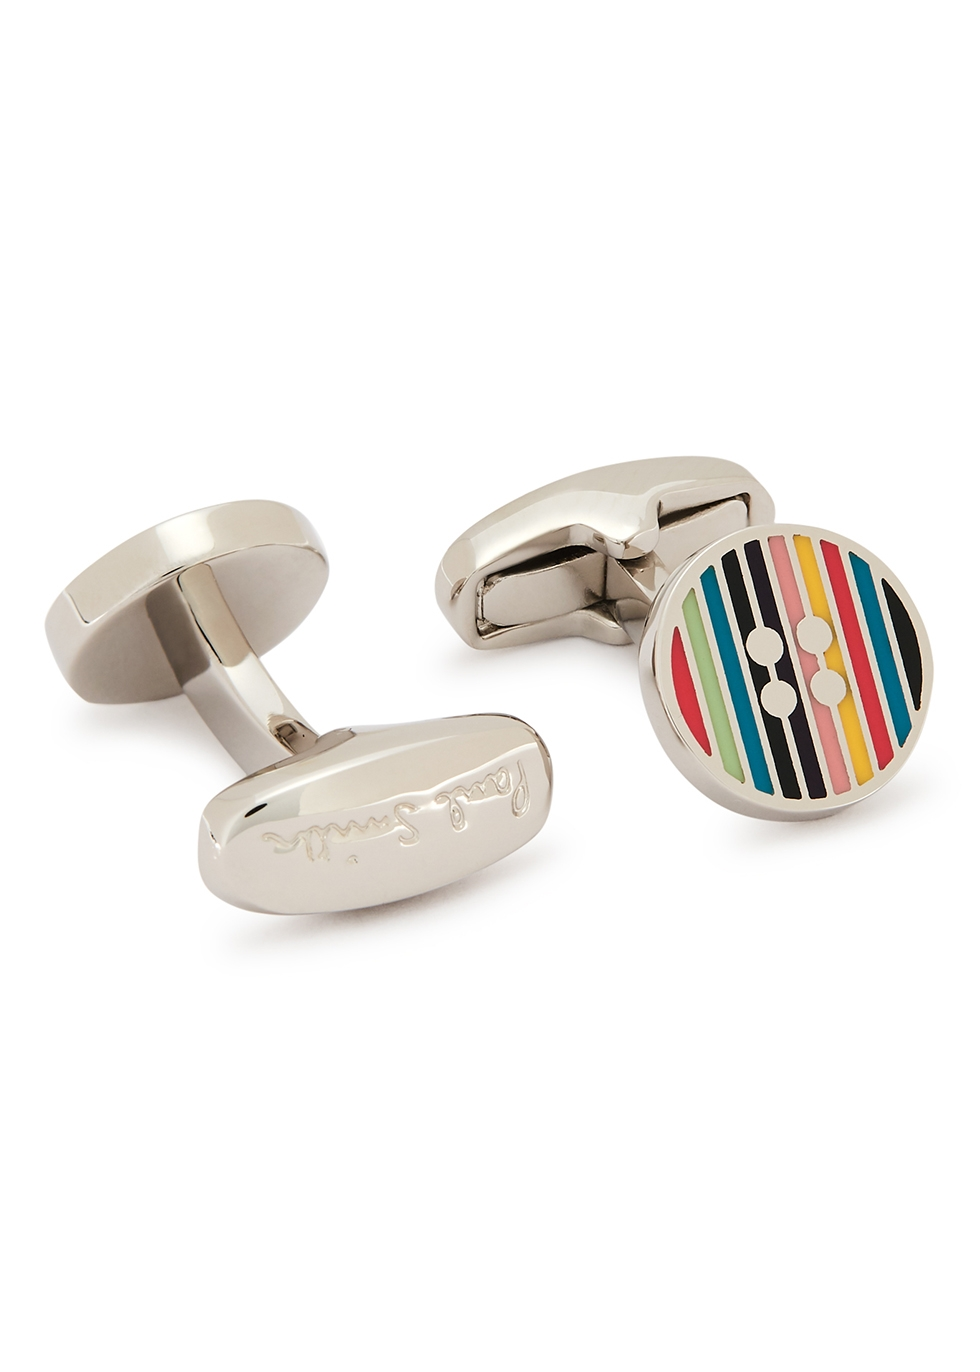 Silver-tone button cufflinks - Paul Smith